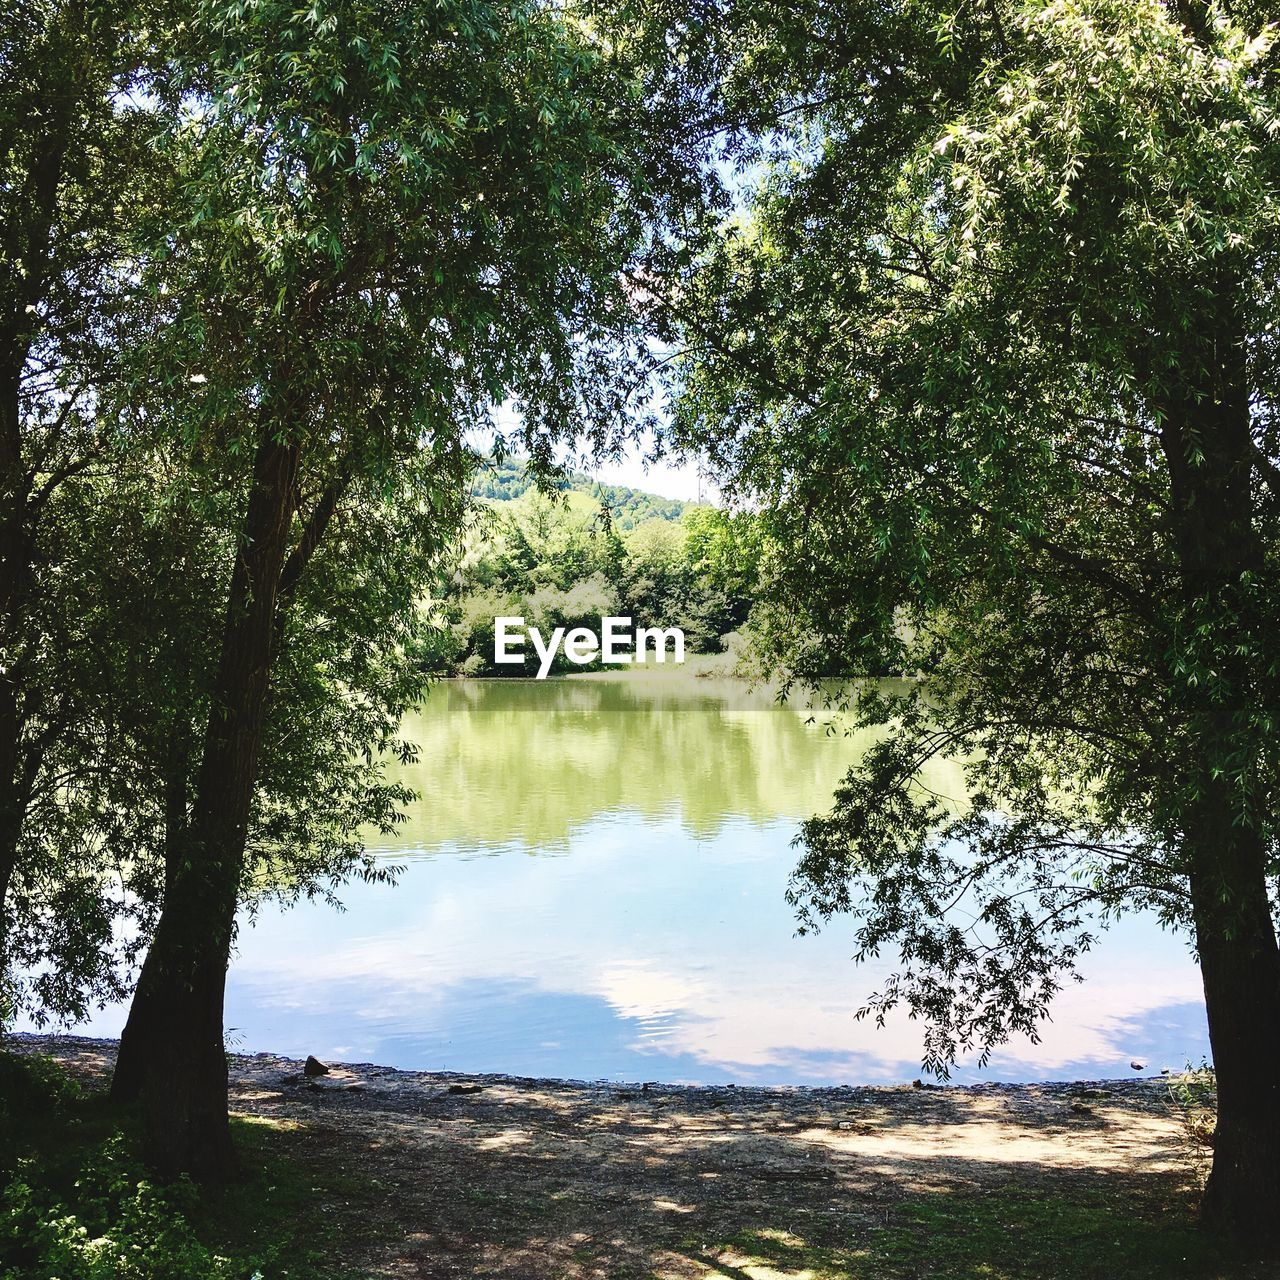 tree, nature, reflection, water, no people, tranquil scene, outdoors, day, growth, tranquility, beauty in nature, forest, scenics, lake, branch, sky, grass